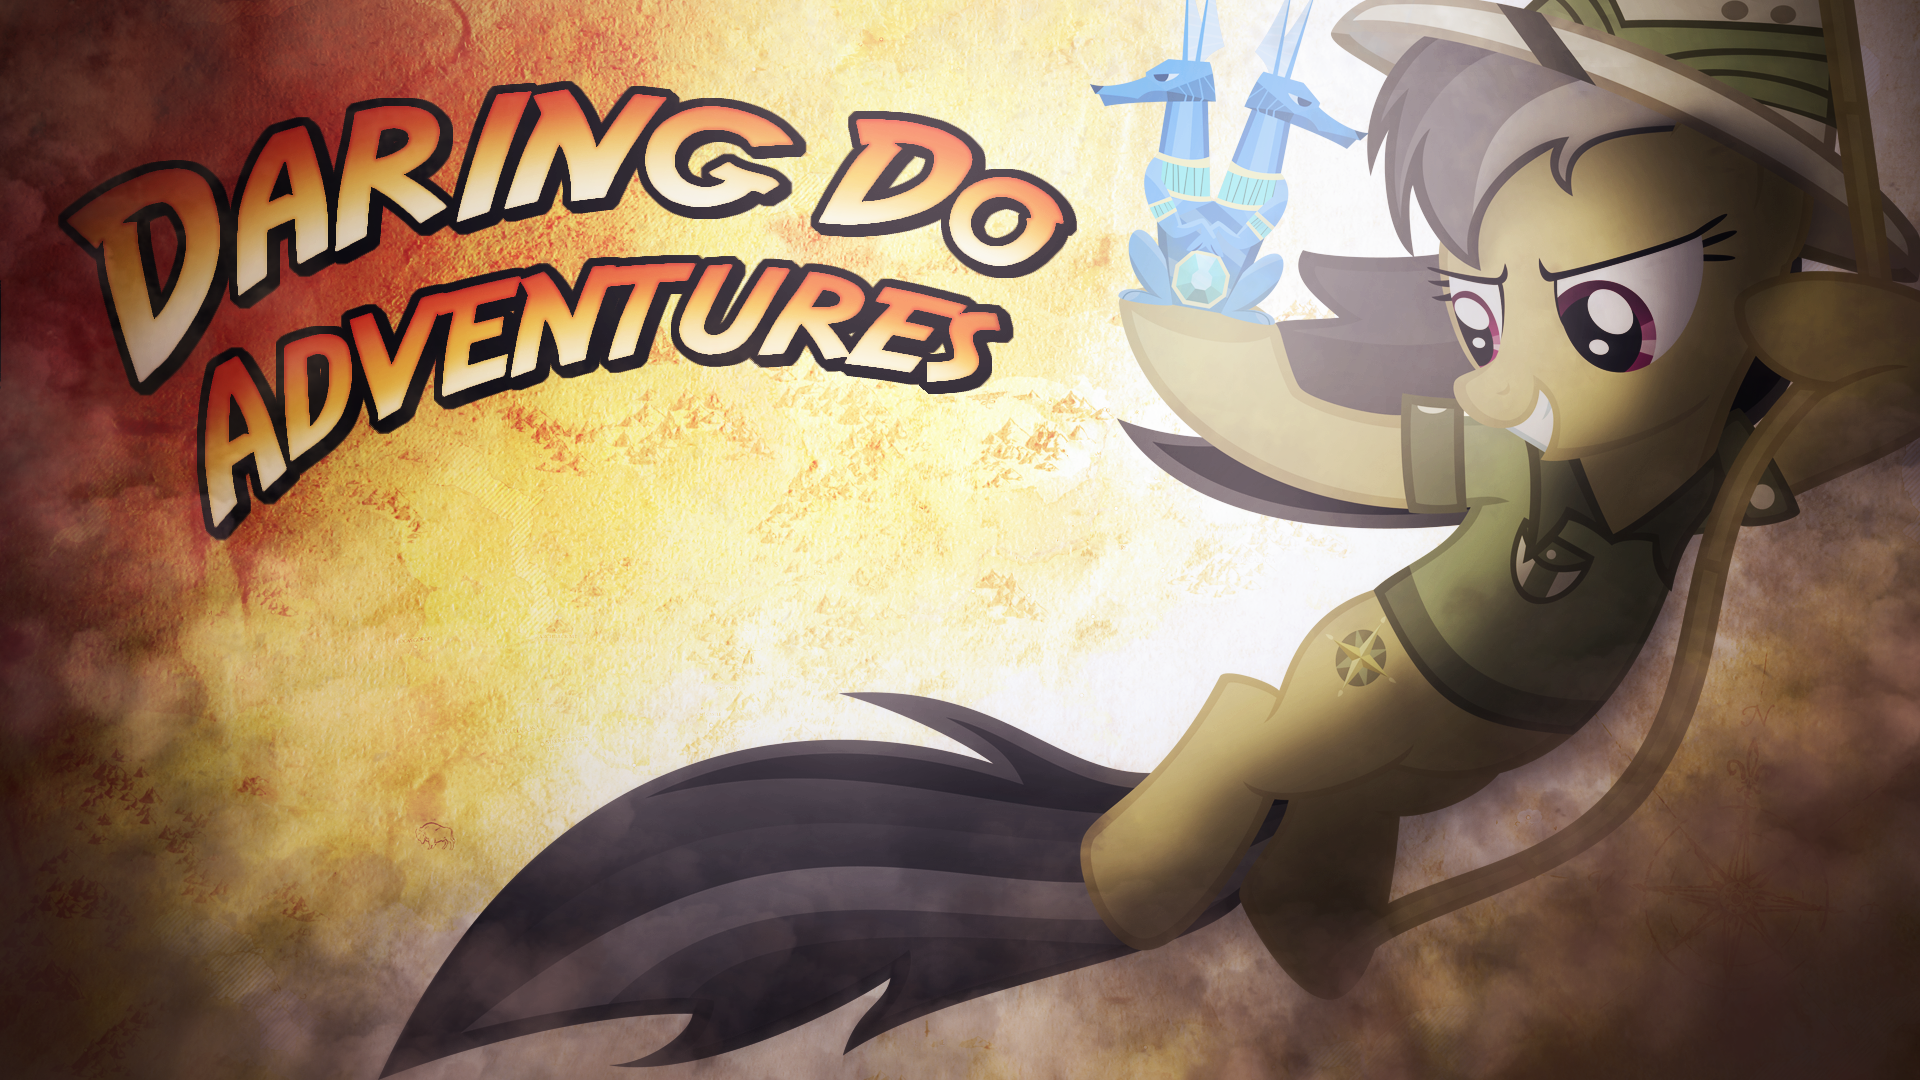 Daring Do Adventures! by delectablecoffee and SandwichDelta